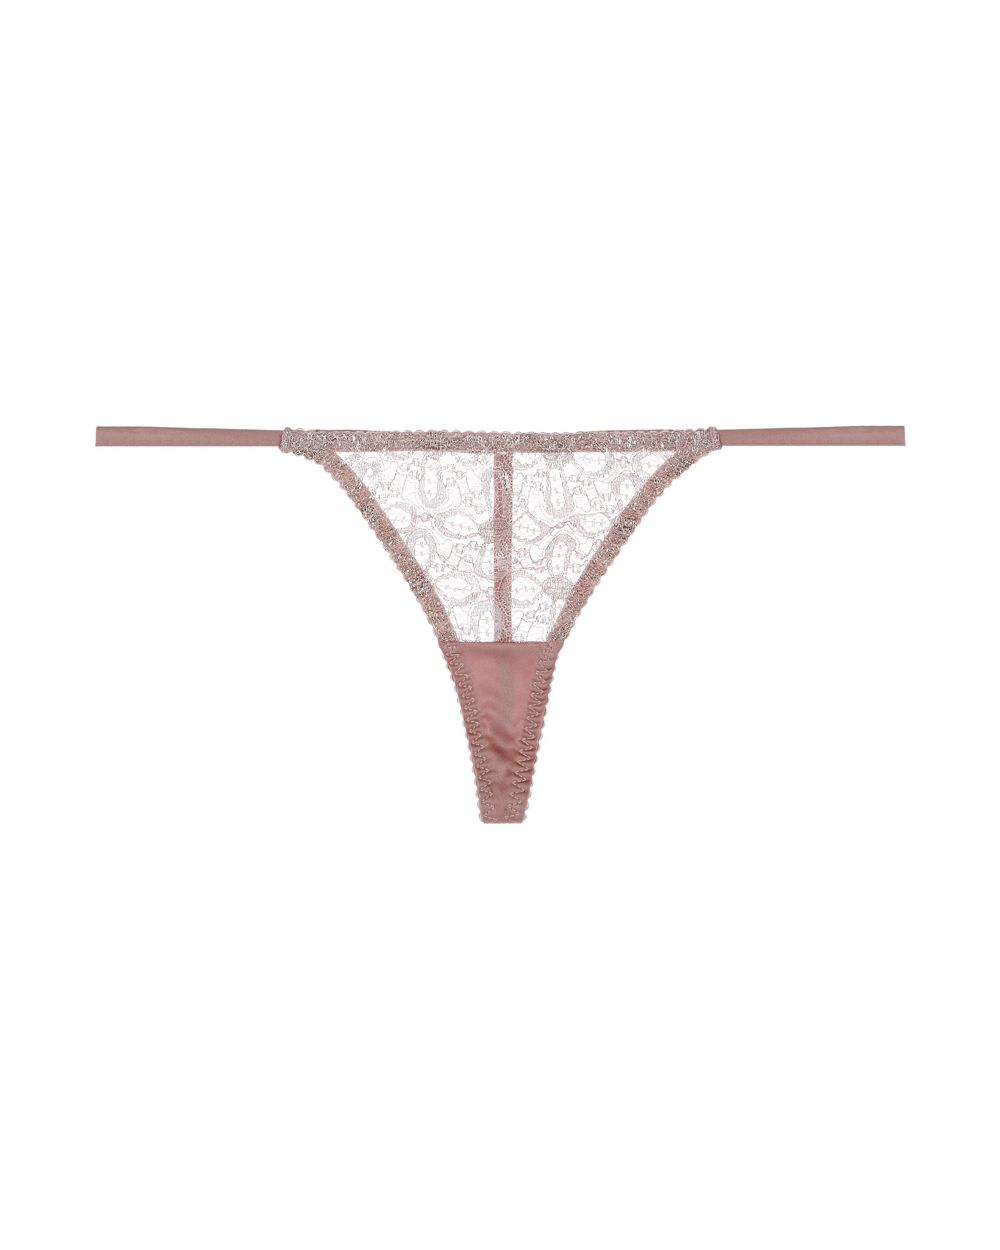 664e813e6f217 Rosemoor Street Thong by Myla Journelle Myla Myla Only Hearts Only Hearts